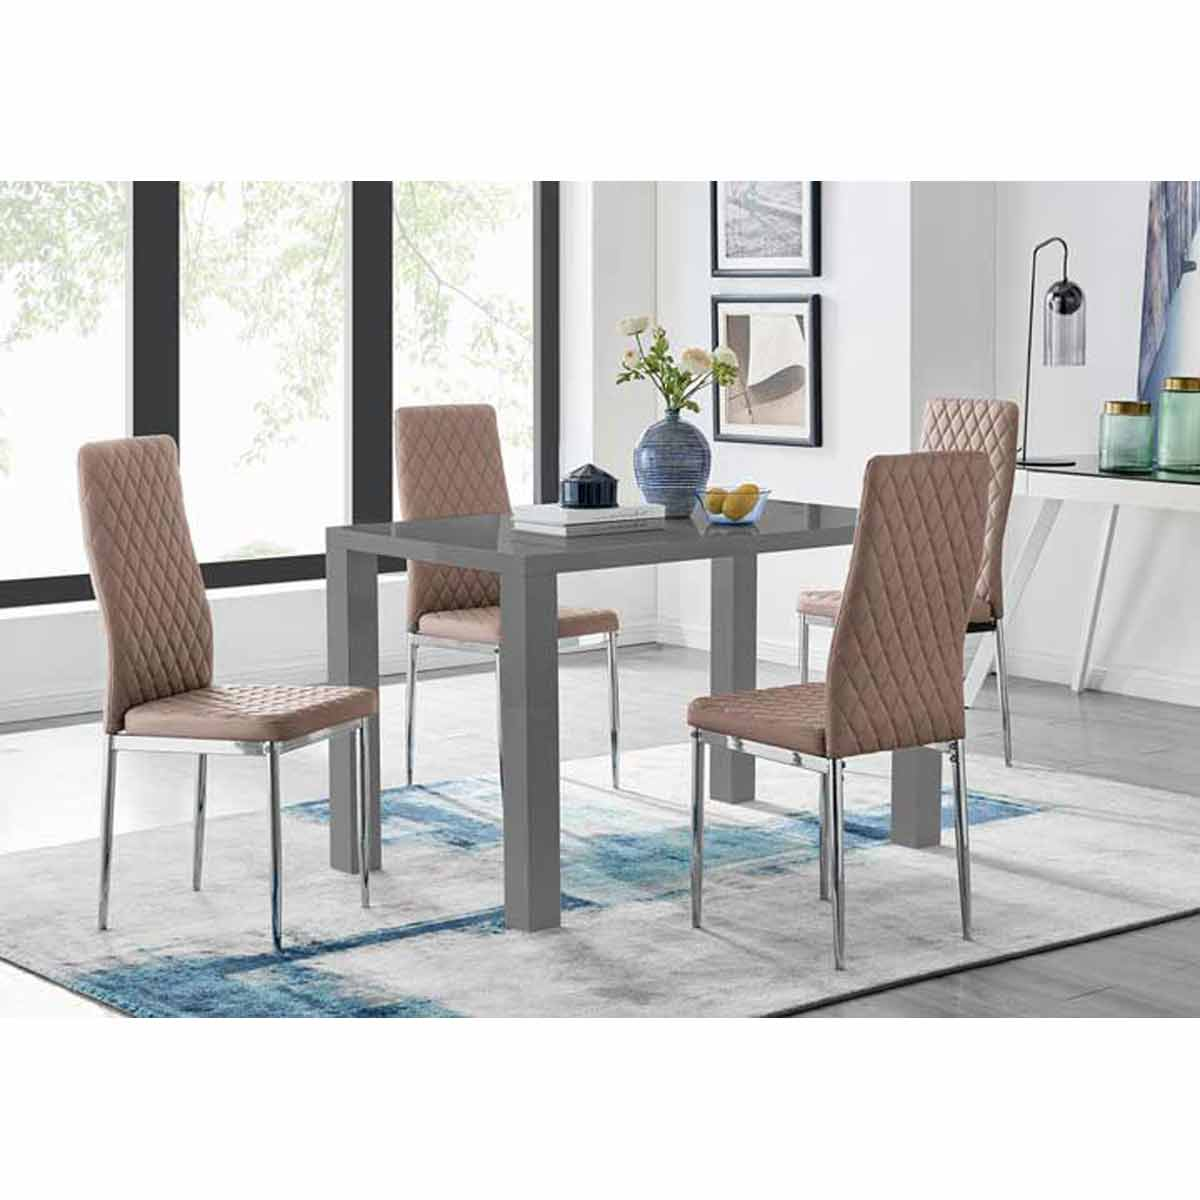 Furniture Box Pivero 4 Grey High Gloss Dining Table And 4 Modern Cappuccino Grey Milan Chairs Set